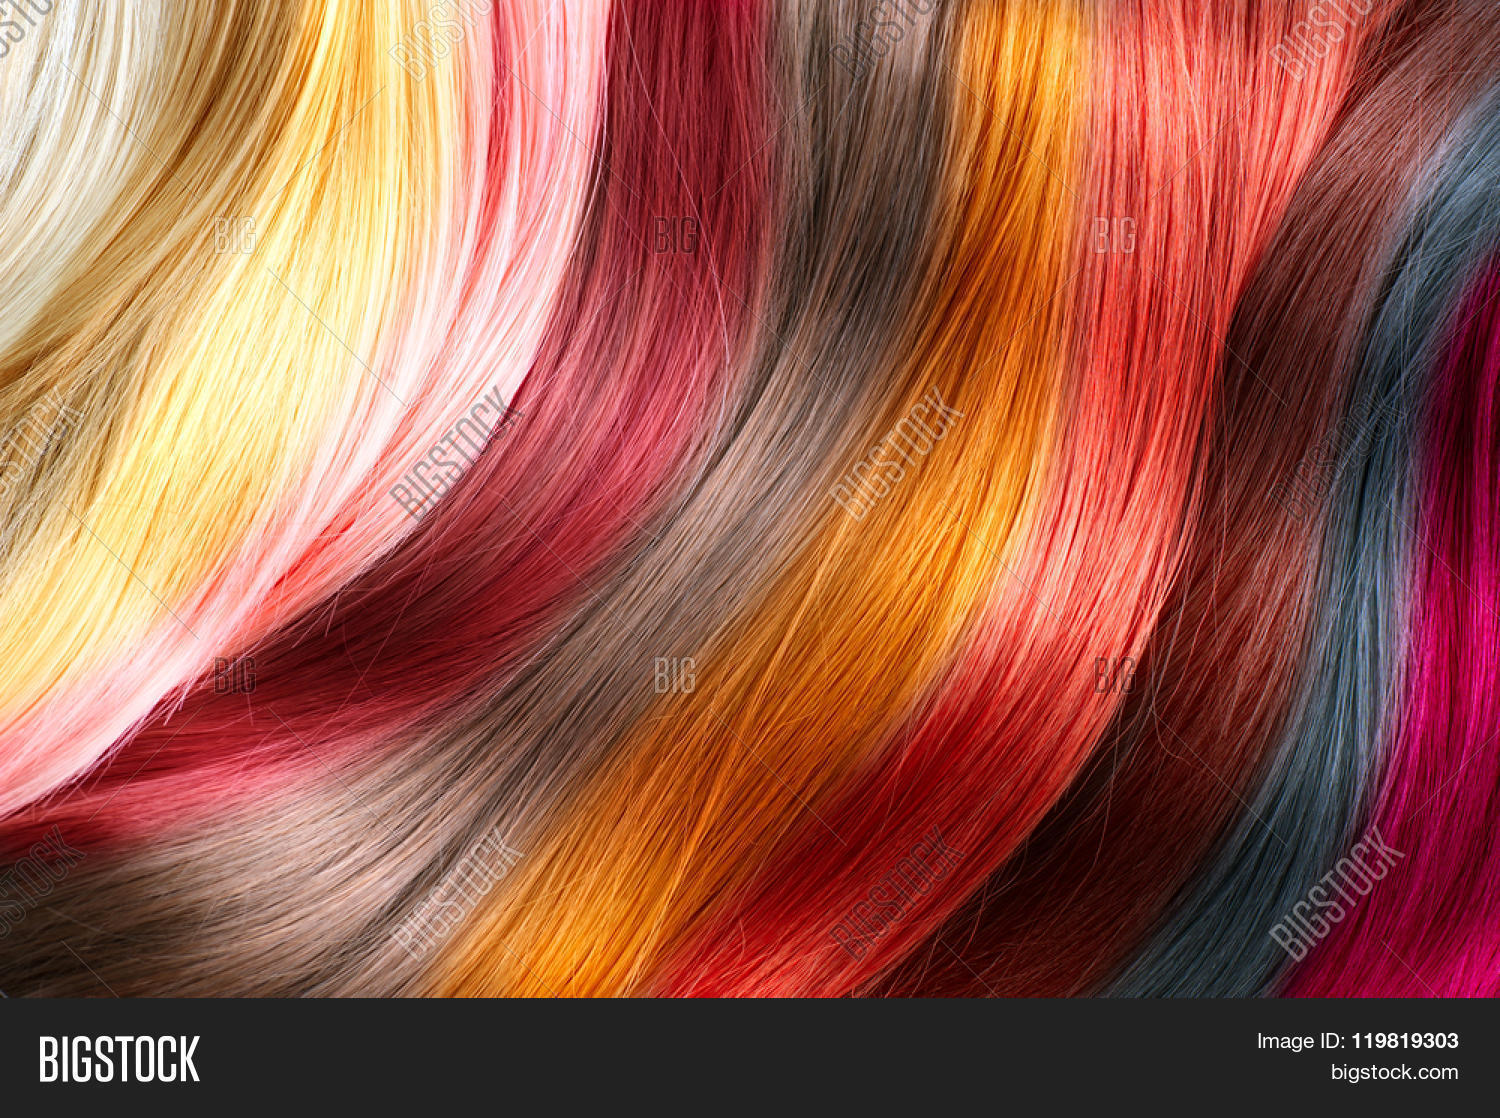 Hair Colors Palette Hair Texture Image Amp Photo Bigstock